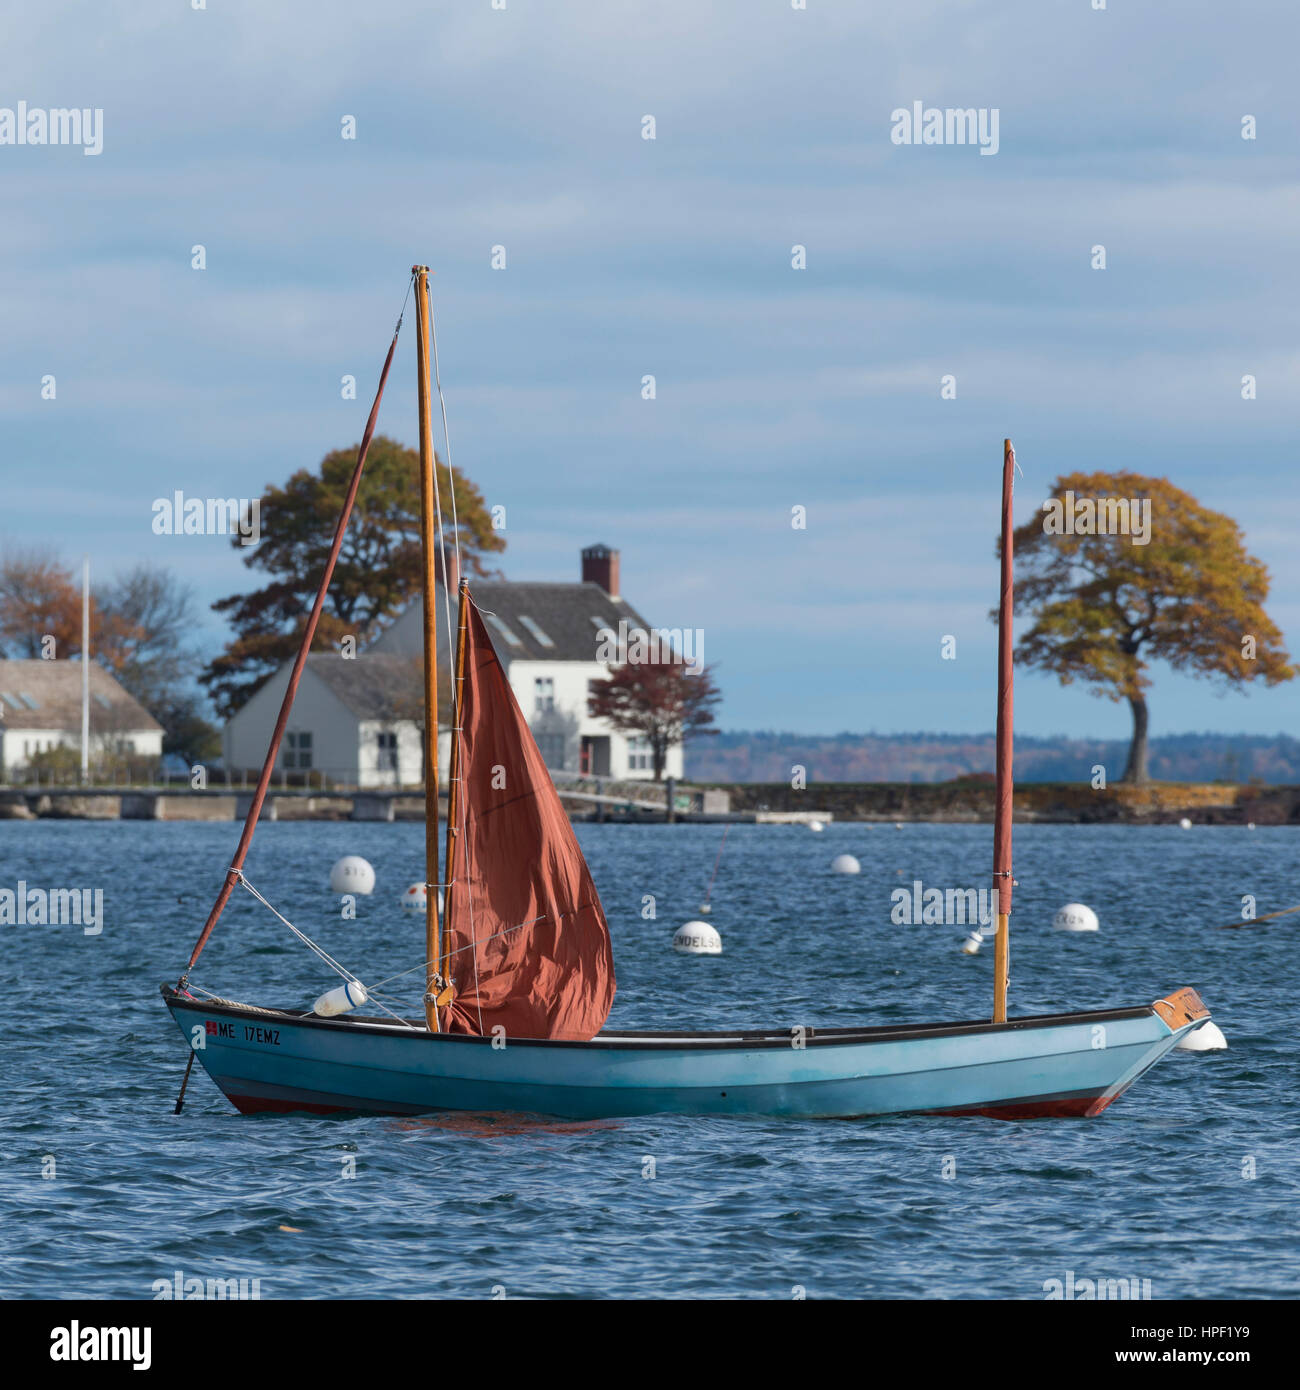 Ketch Dinghy on its Moorings in Camden Harbor, Maine - Stock Image